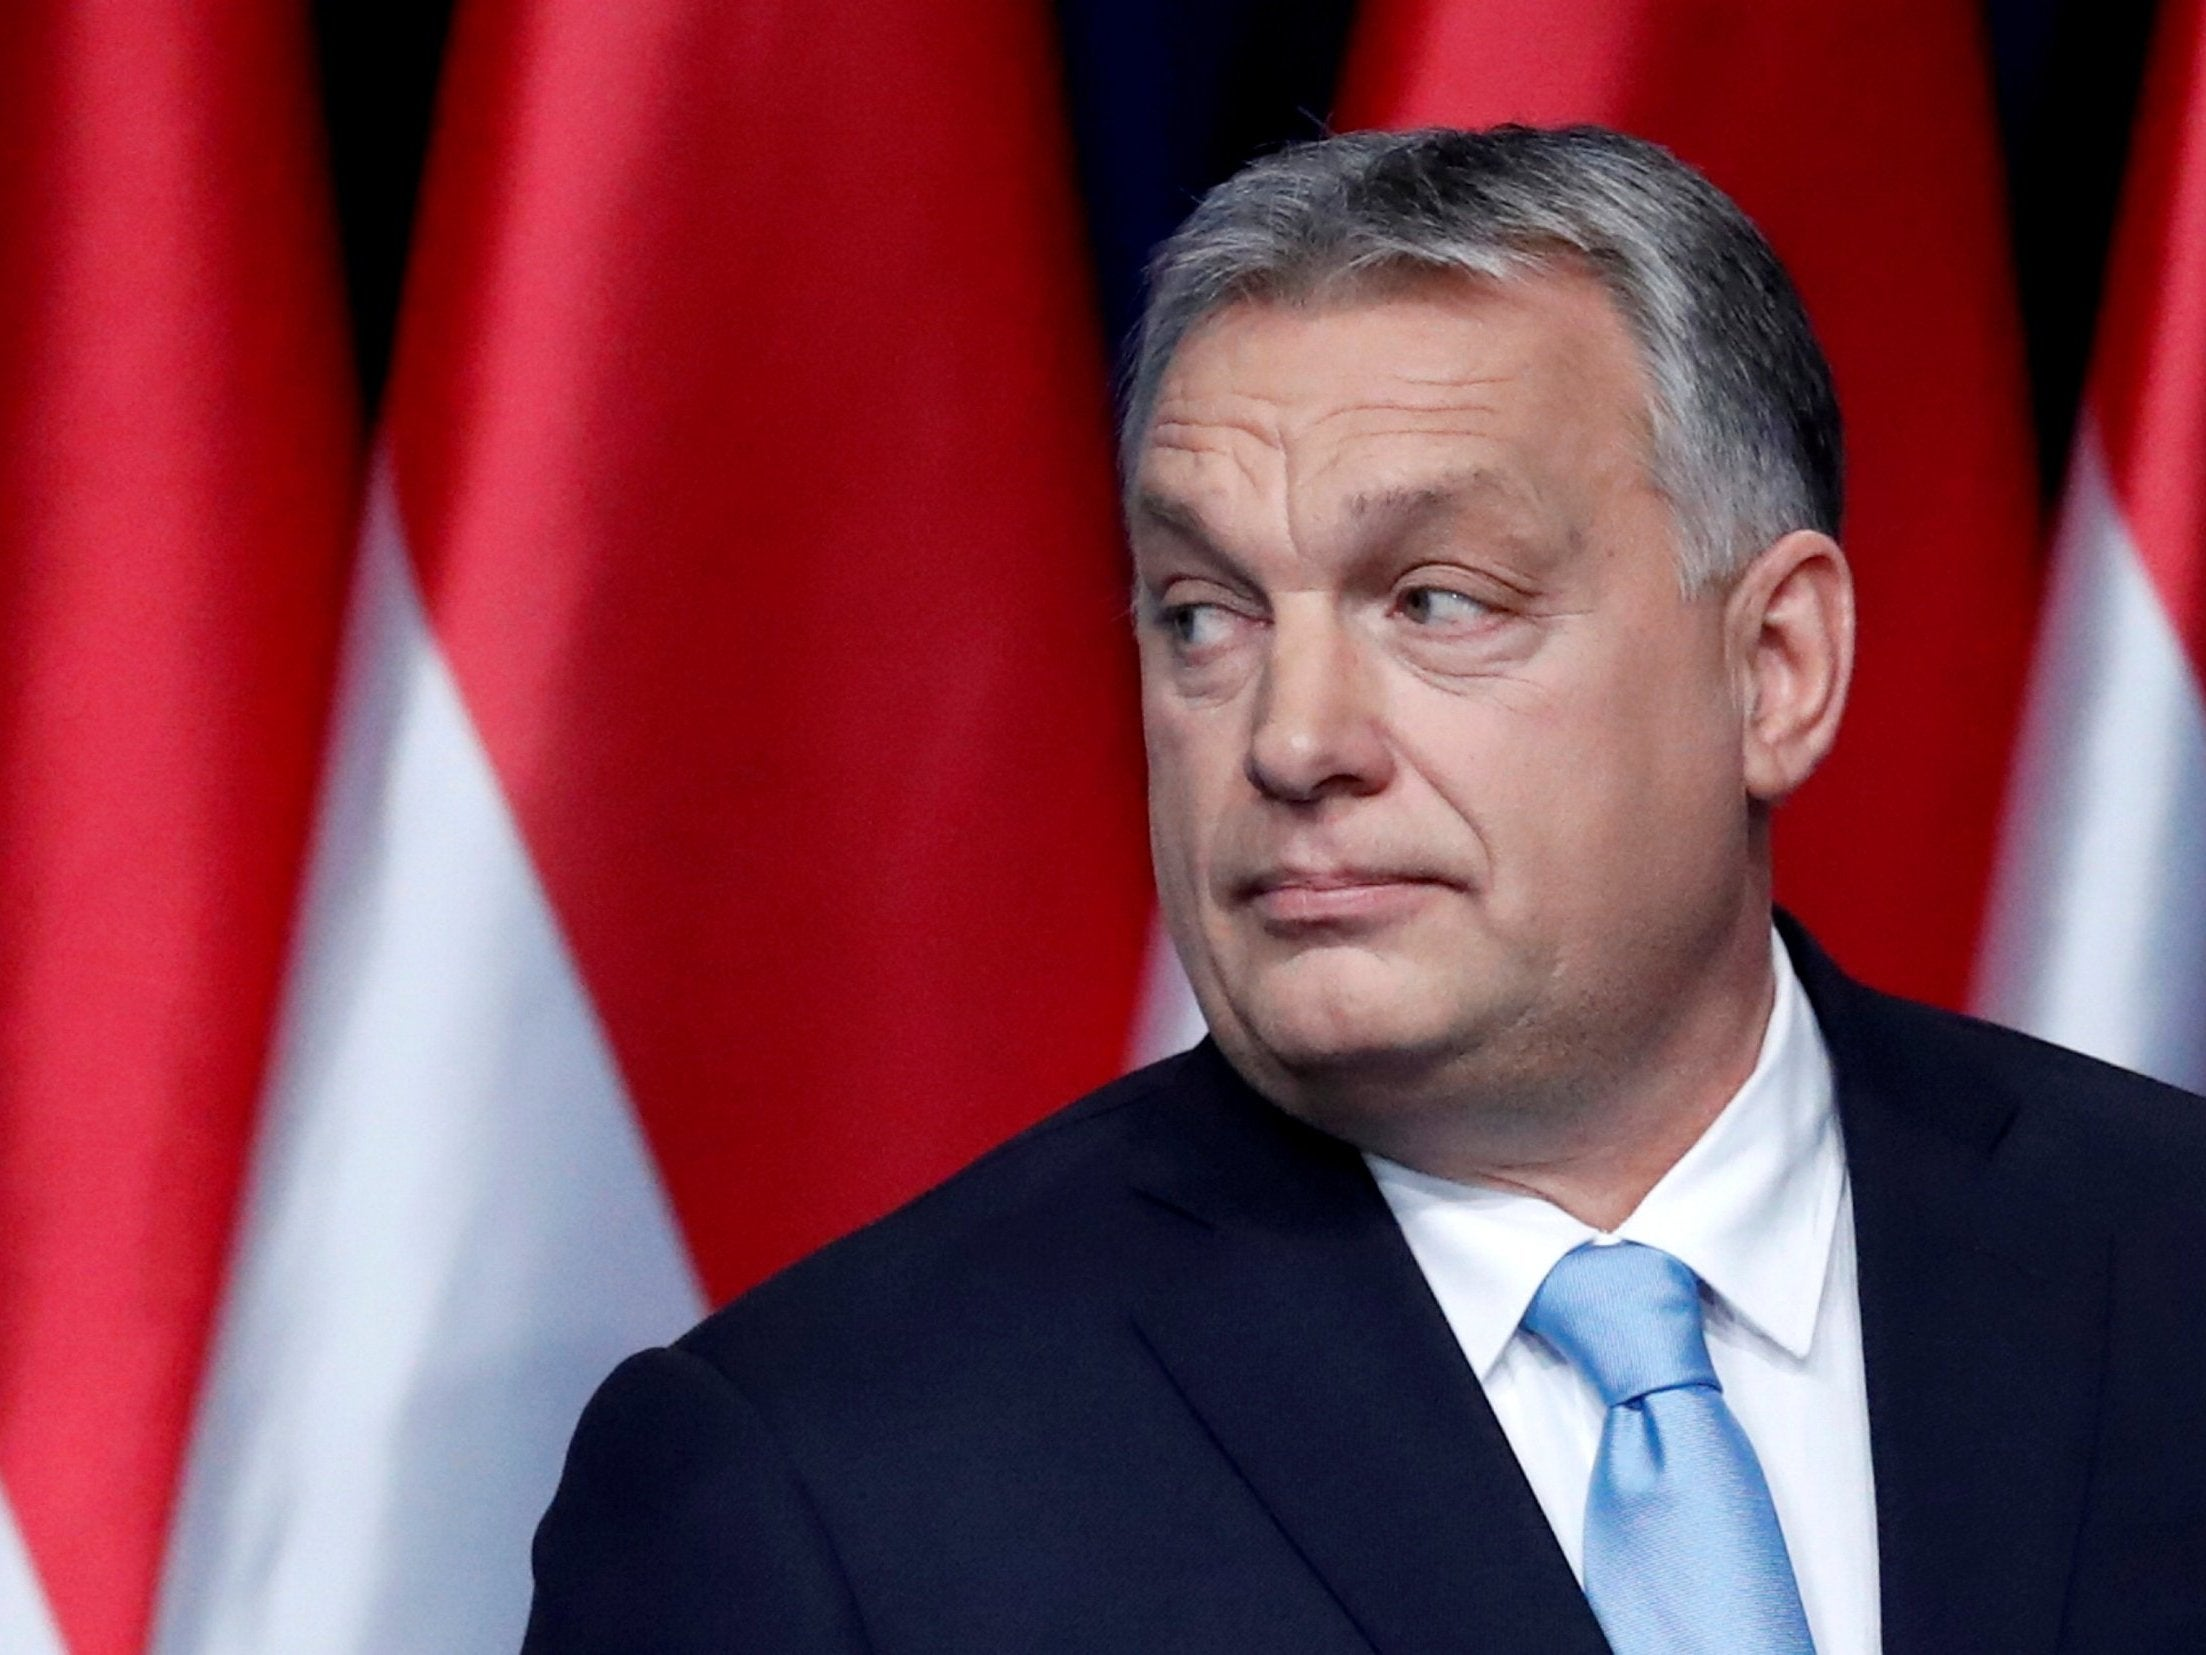 Hungary's far-right government says it won't veto Brexit extension a…